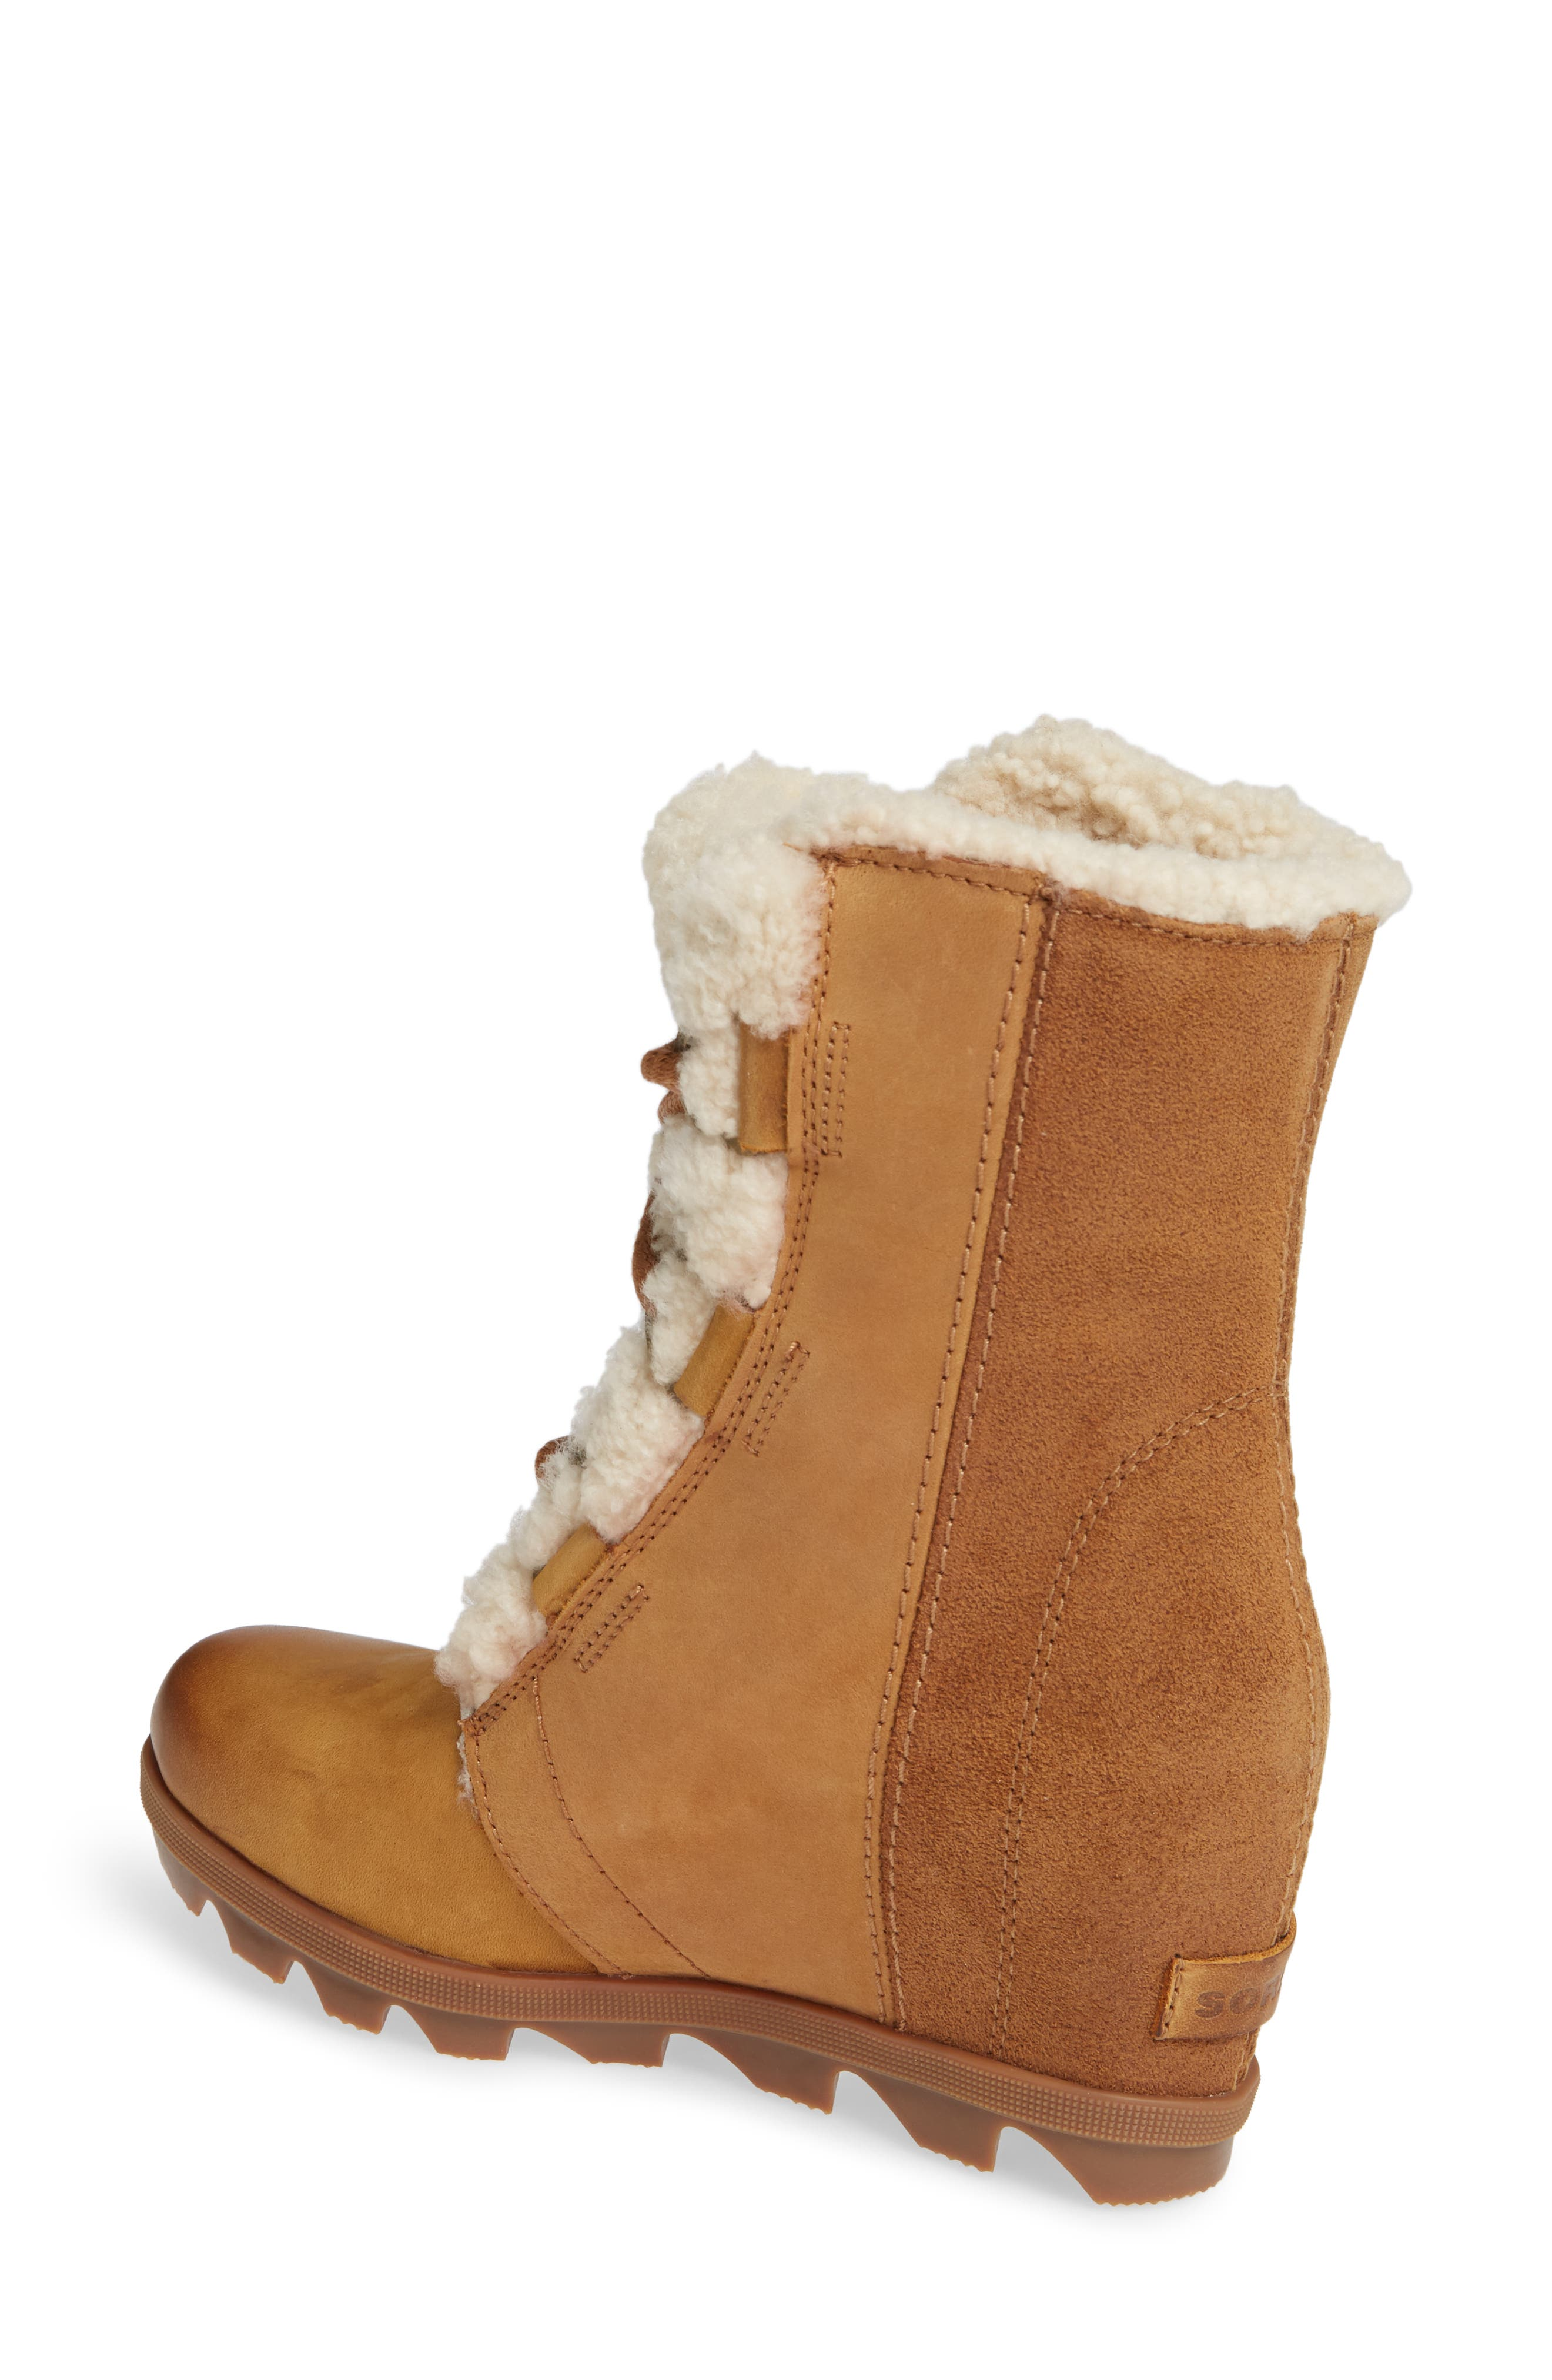 Joan of Arctic Wedge II Genuine Shearling Bootie,                             Alternate thumbnail 2, color,                             CAMEL BROWN